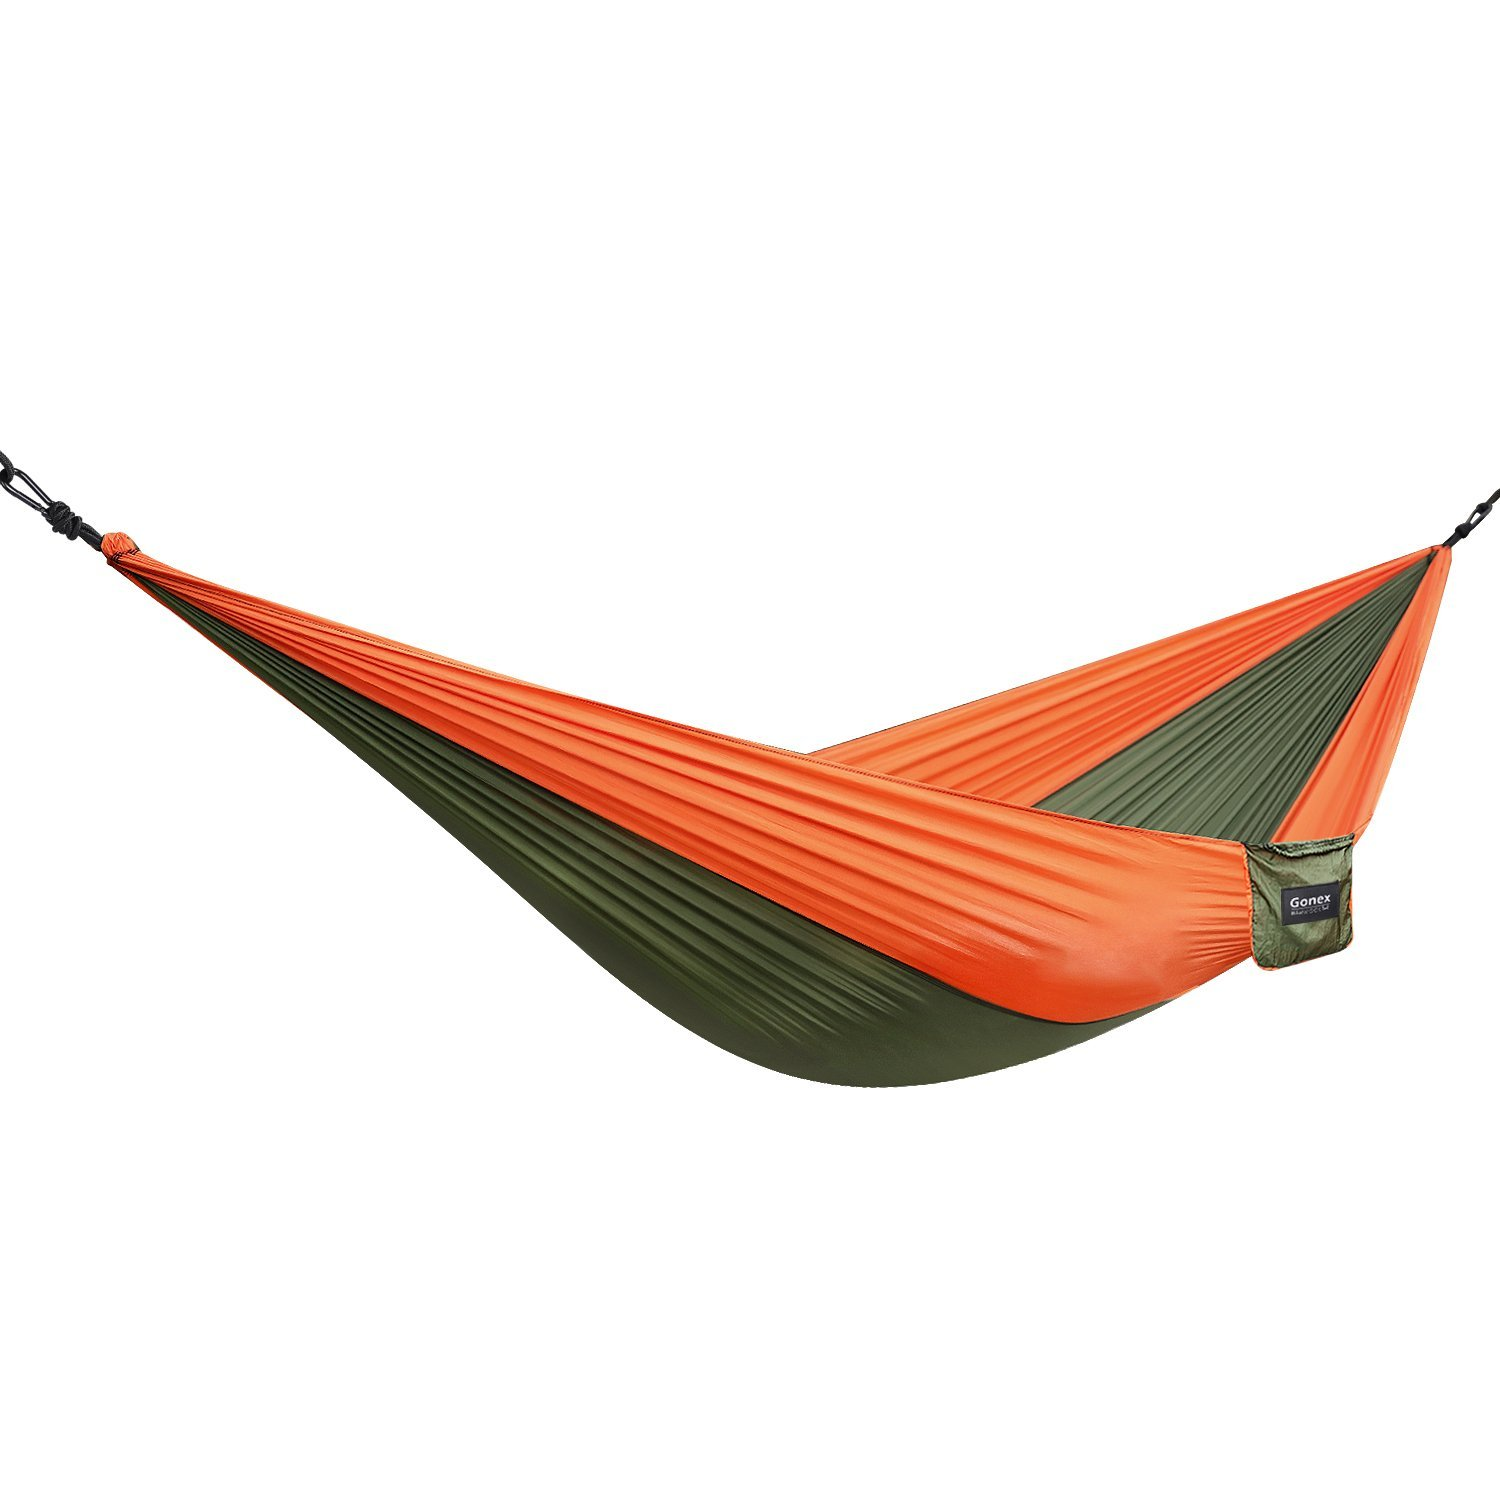 camping hammock gonex lightweight portable nylon hammock for backpacking camping travel beach amazon    portable backpacking banana hammock for men dream sale      rh   amazon